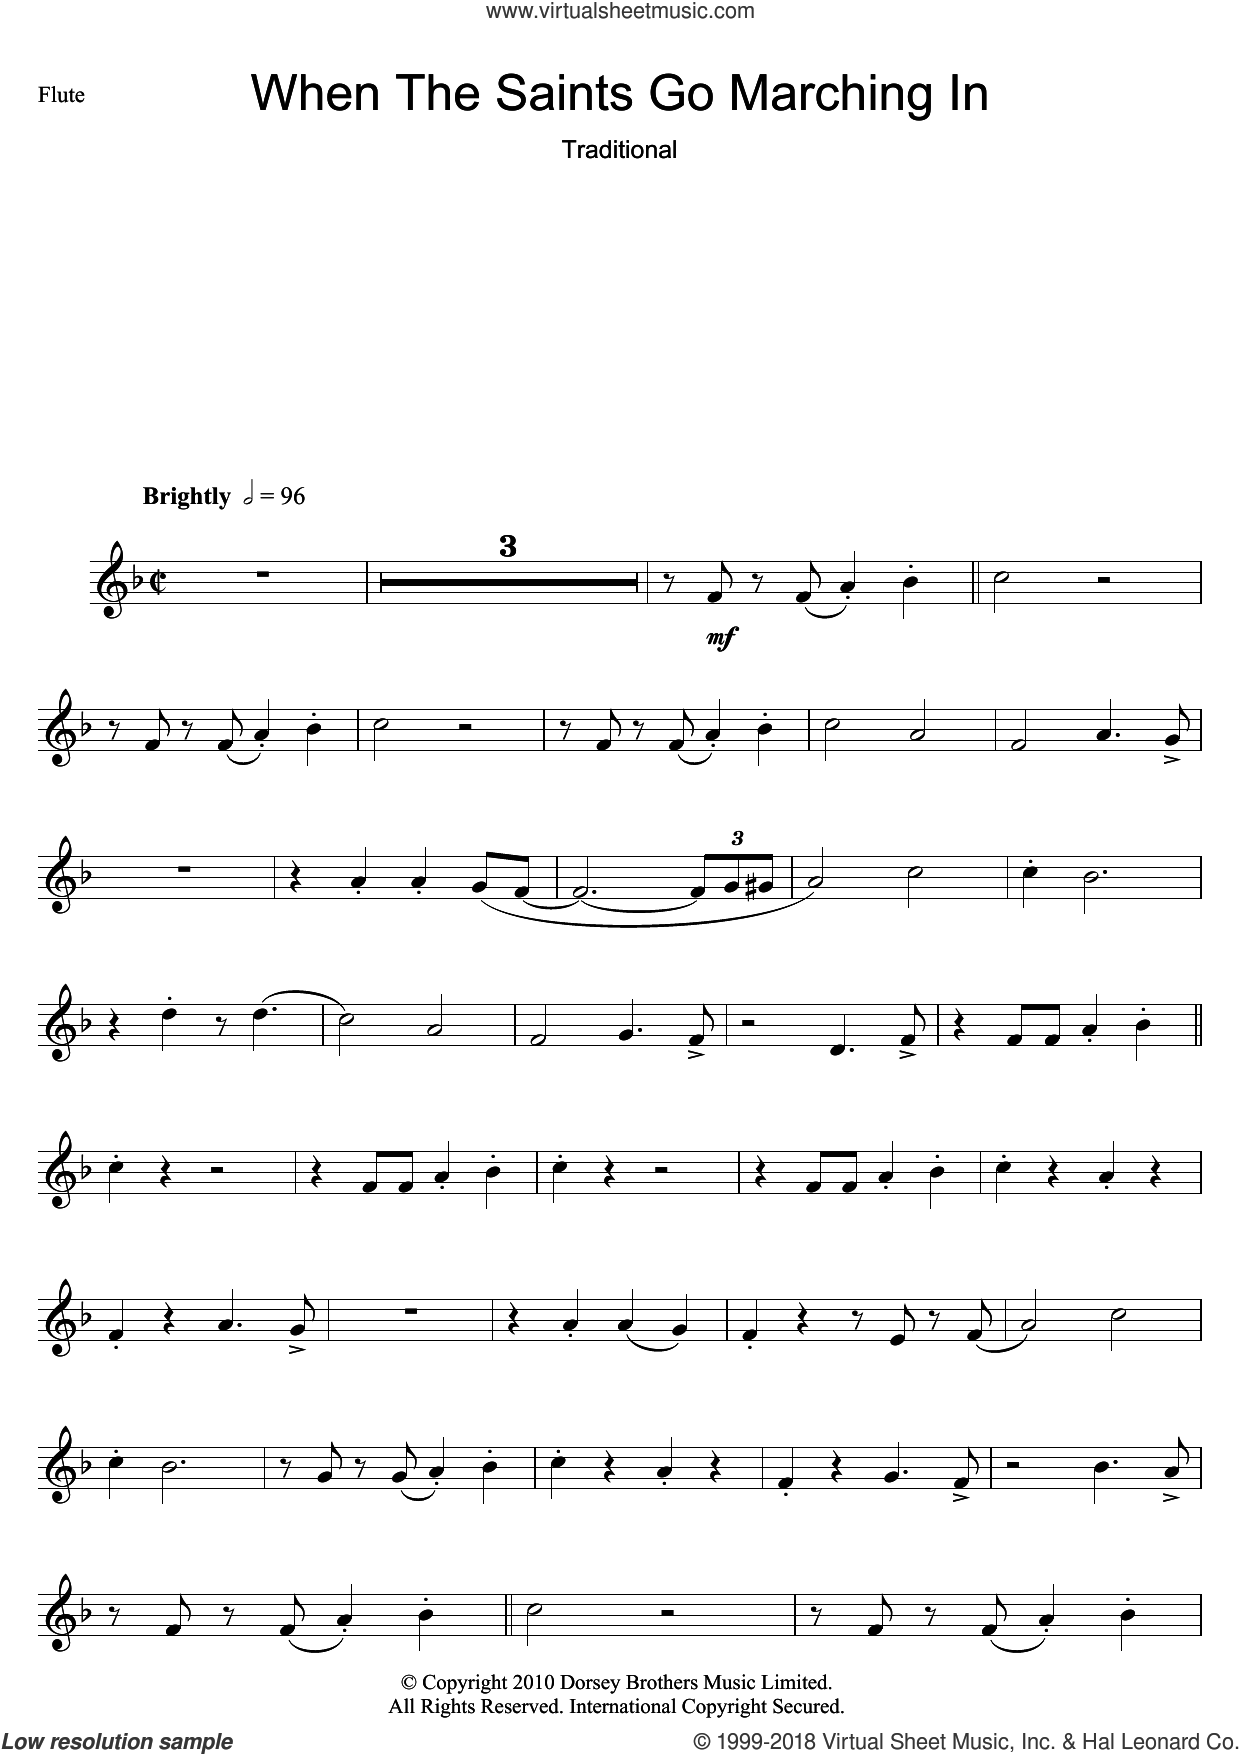 When The Saints Go Marching In sheet music for flute solo. Score Image Preview.